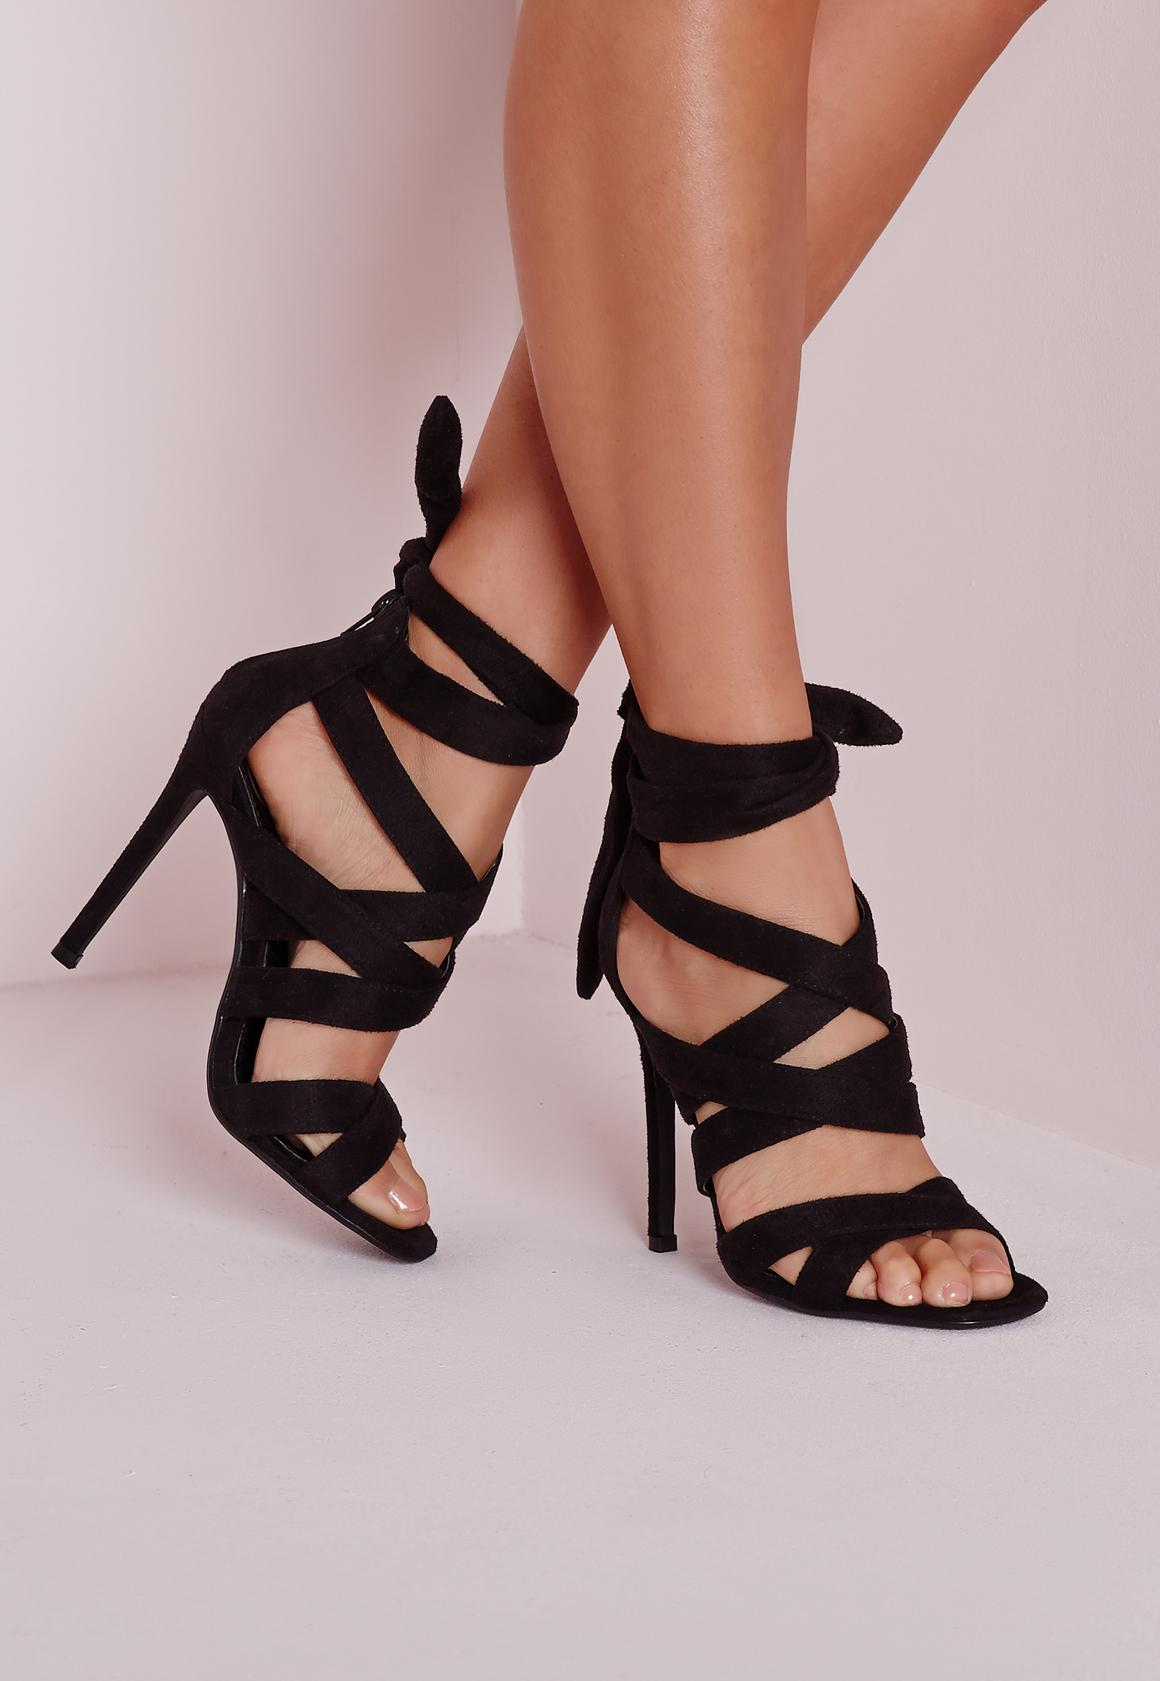 How To Use Gladiator Heels With Other Outfits Styleskier Com